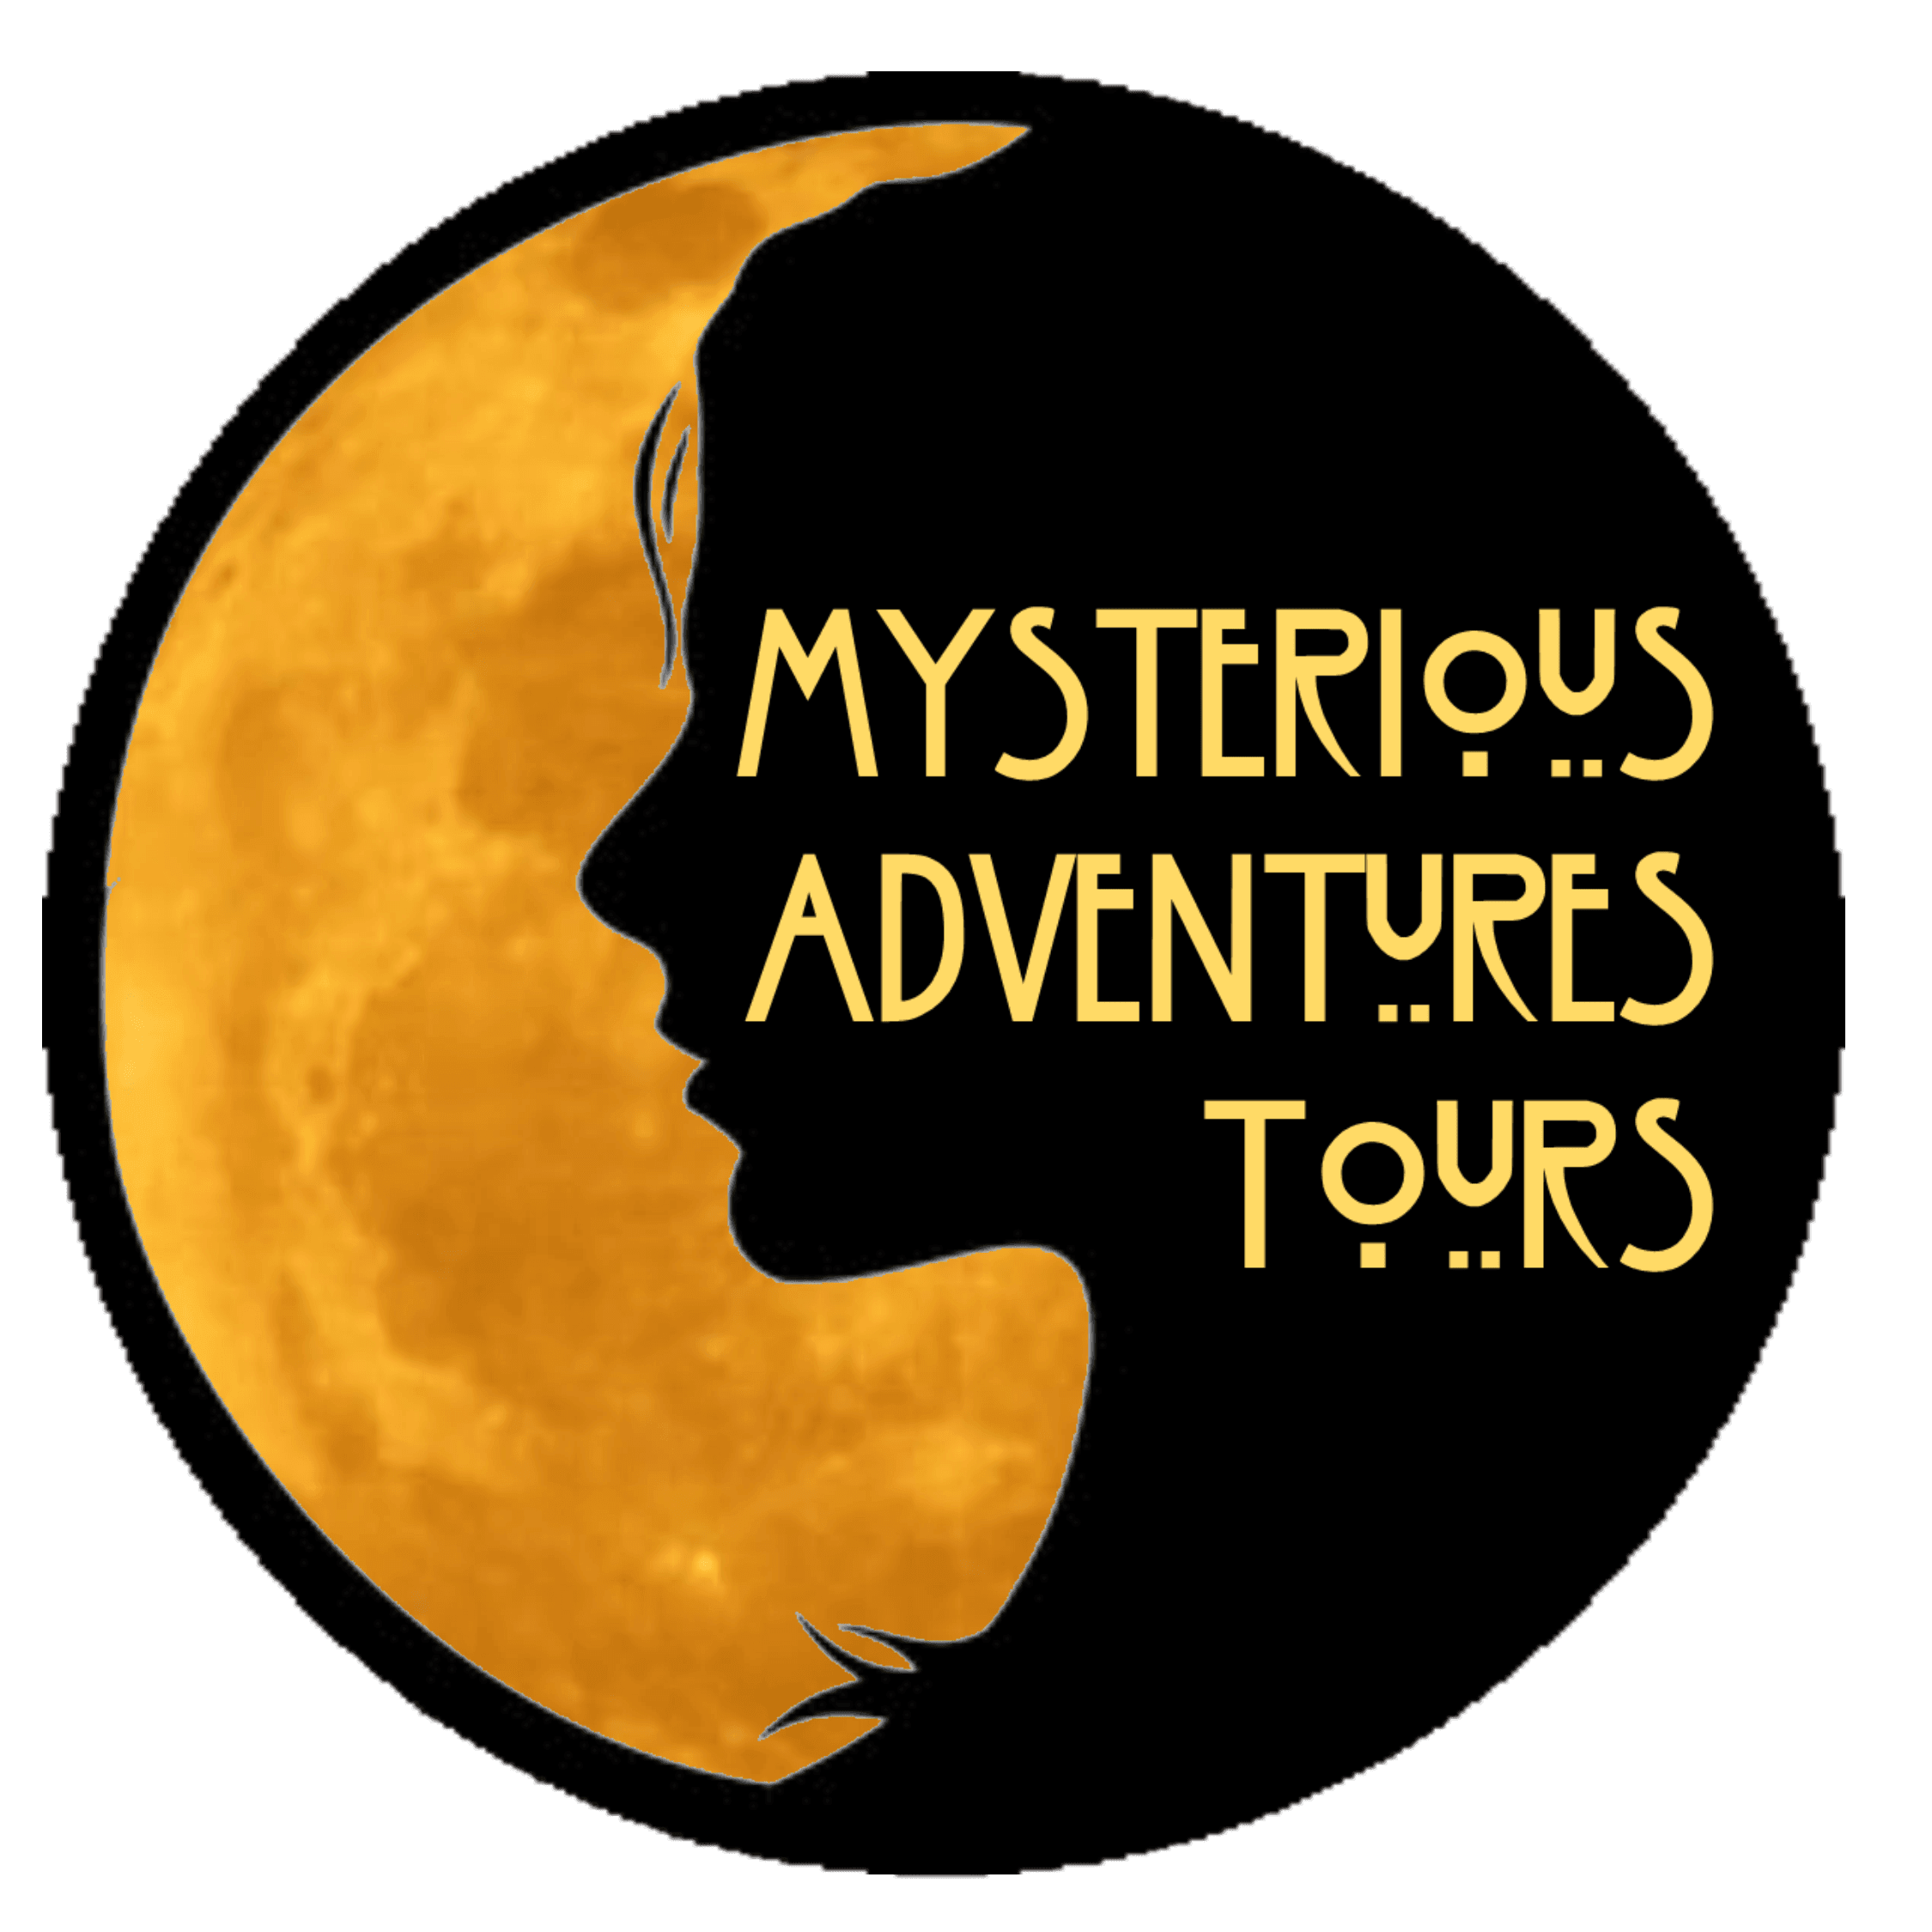 Mysterious Adventures Tours